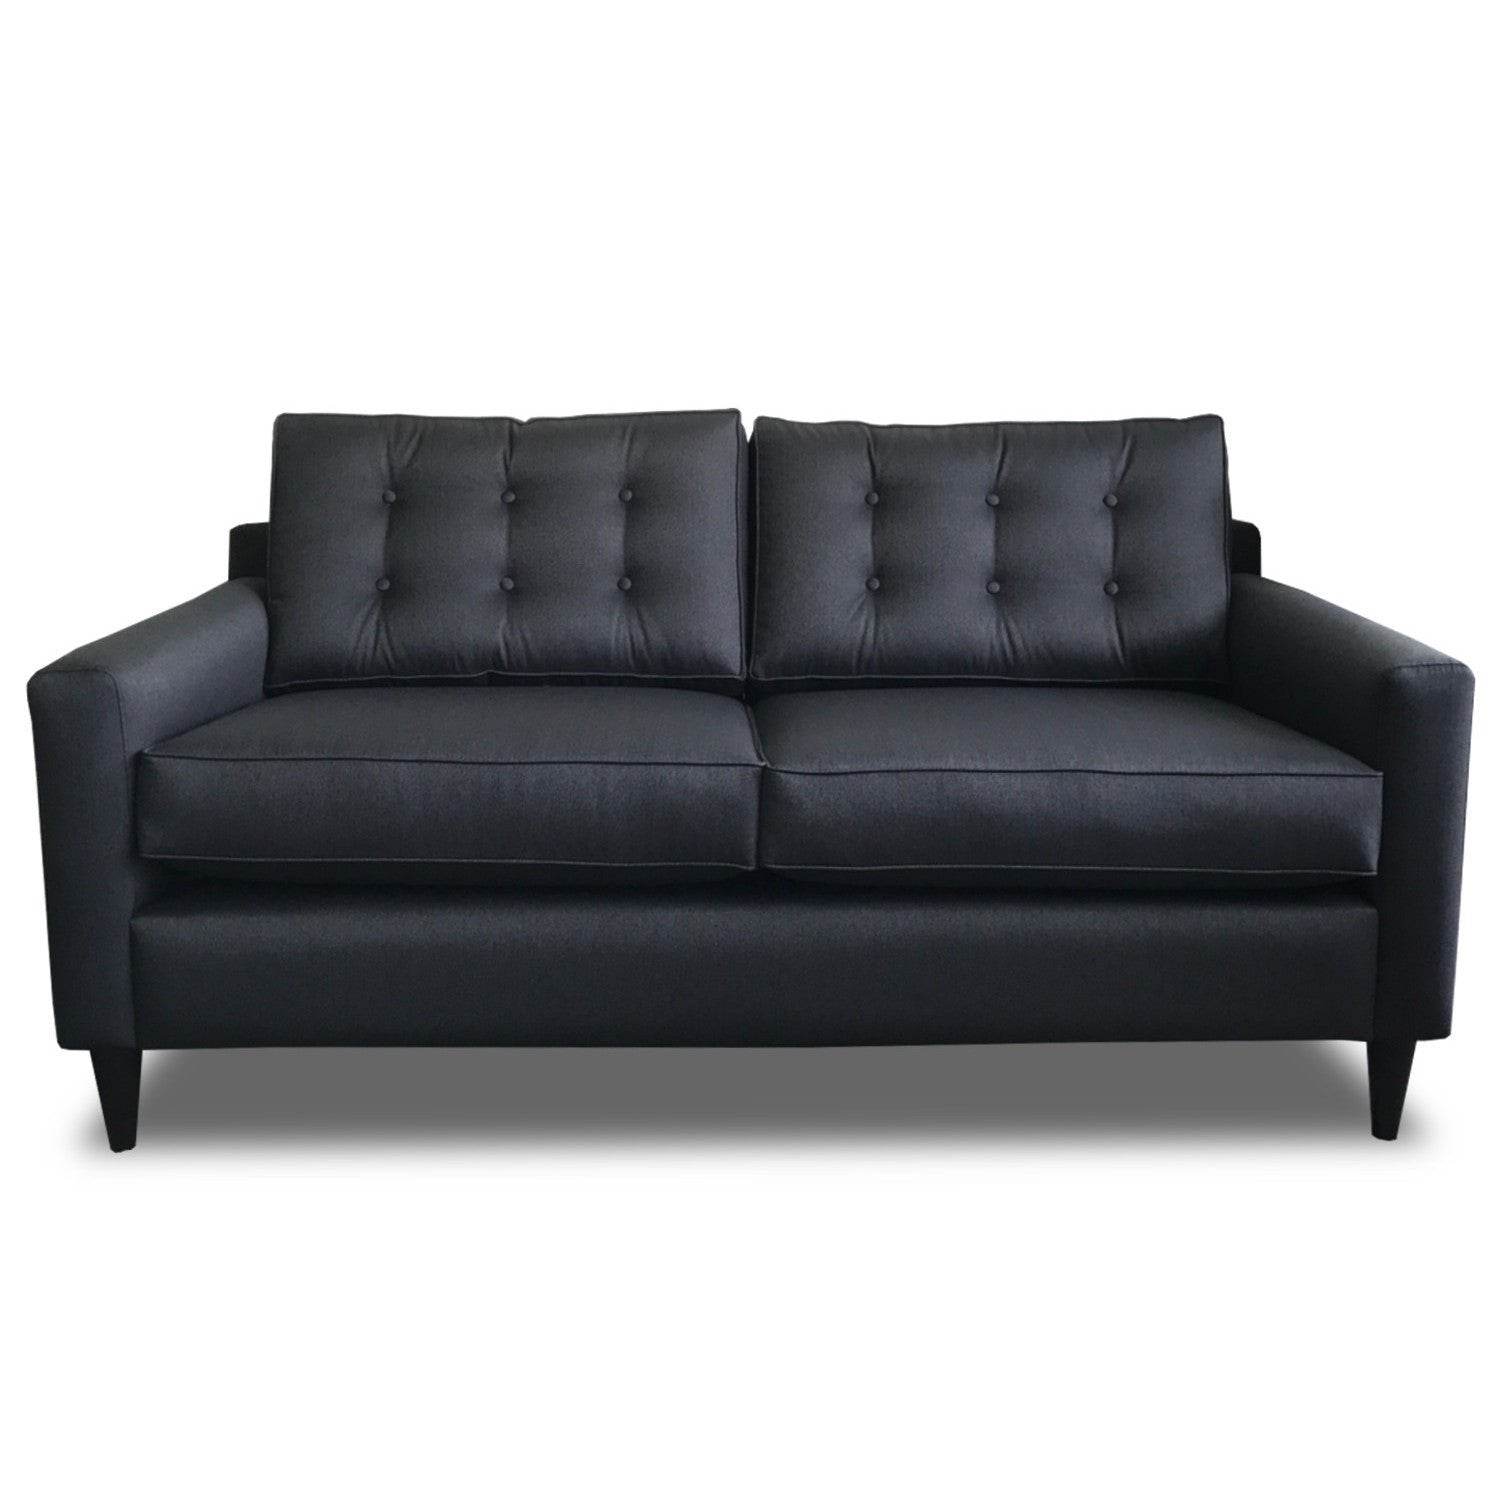 Manhattan 2.5 Seater Sofa - The Furniture Store & The Bed Shop